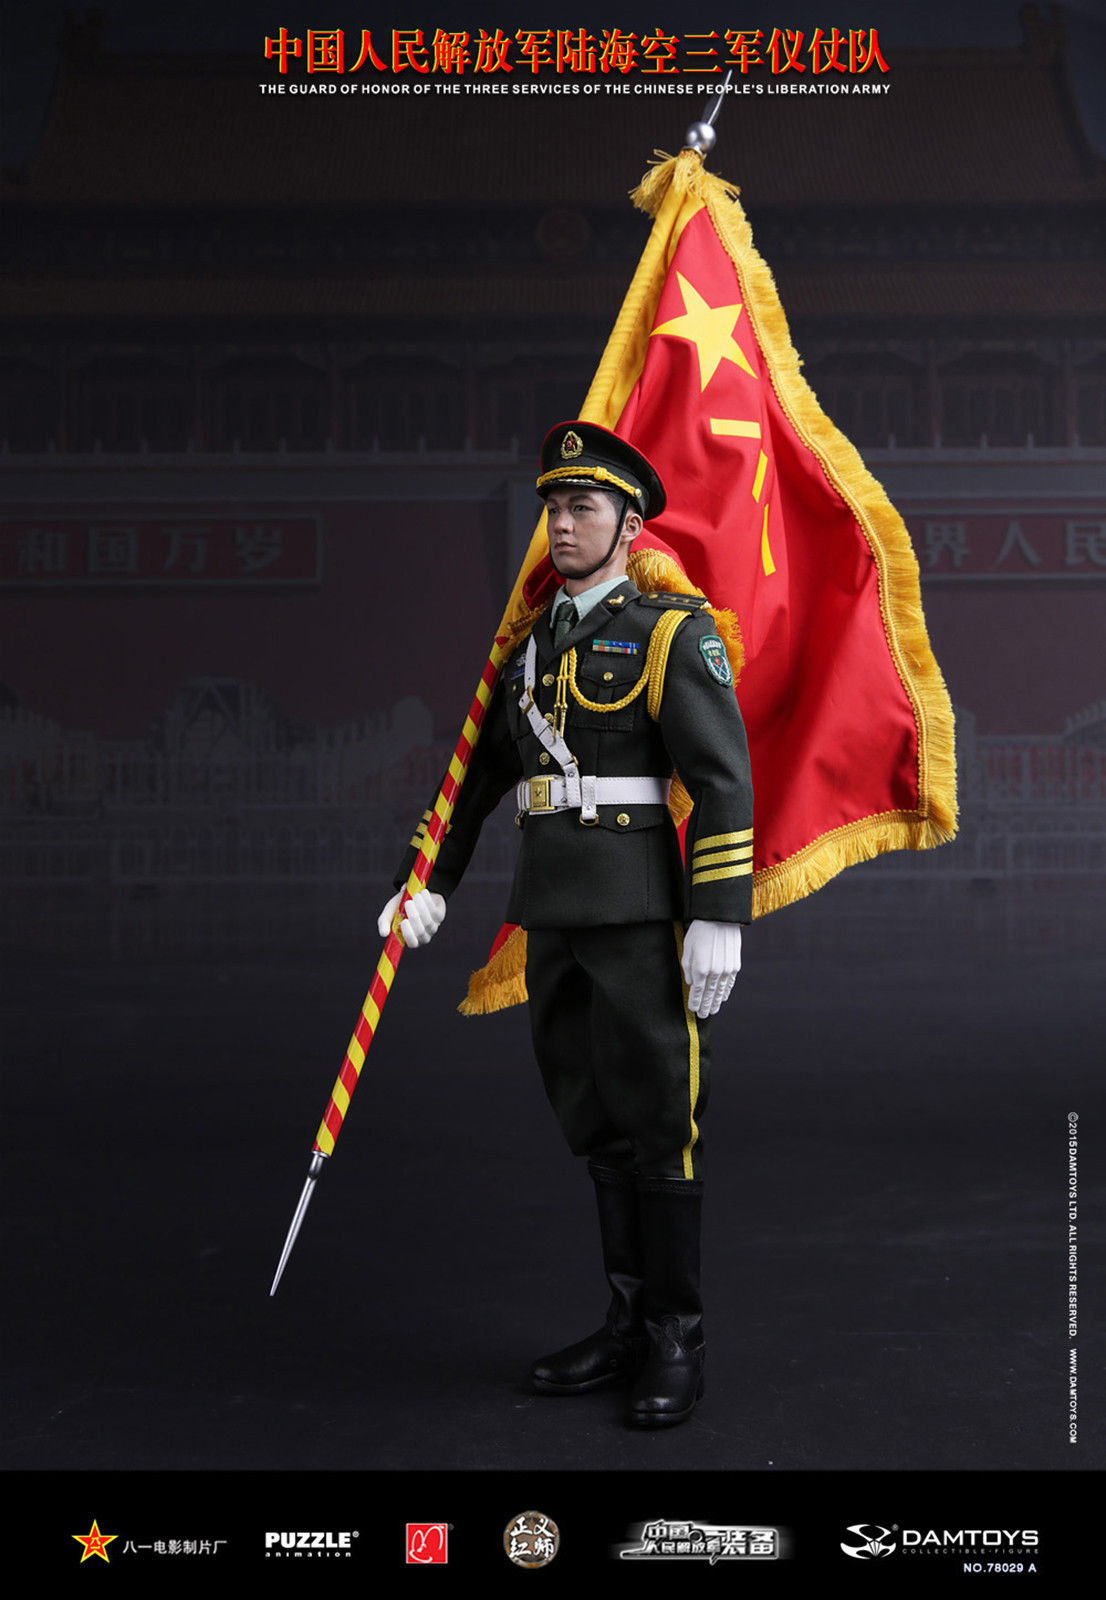 dam 78029a 16 chinese peoples liberation army honor